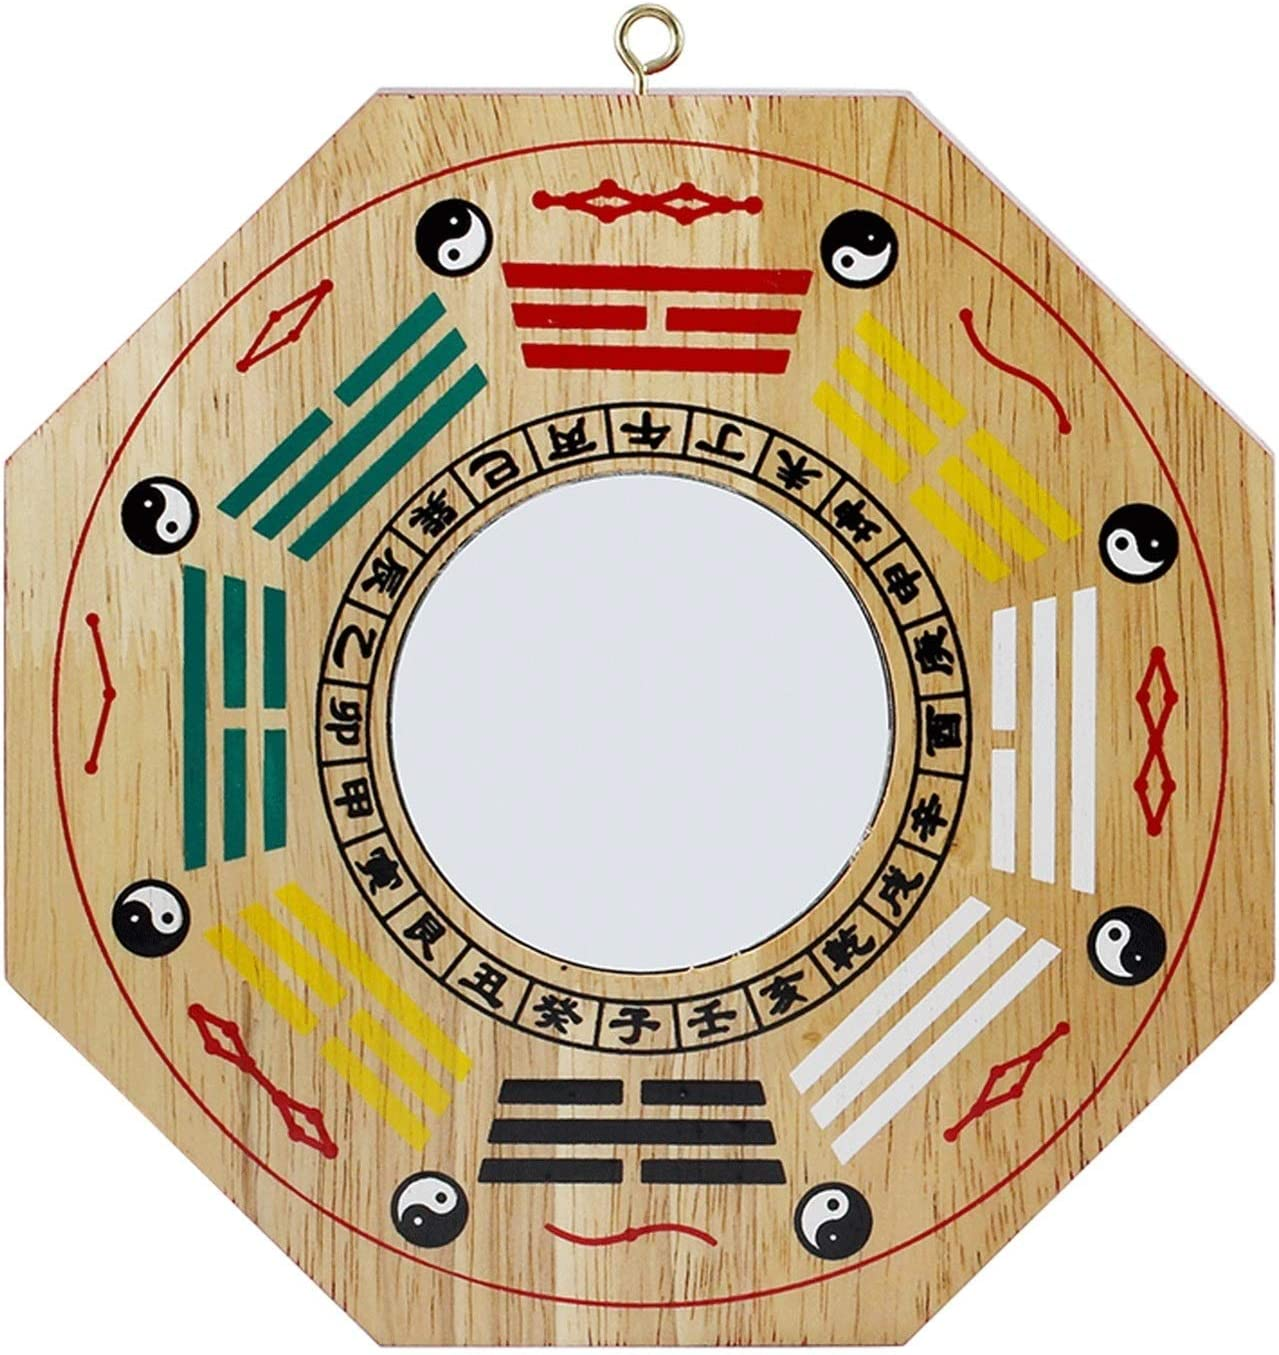 XXXXW Direct store Feng Shui Mirror Bagua of Natural Be super welcome Peach Woodï¼ Made